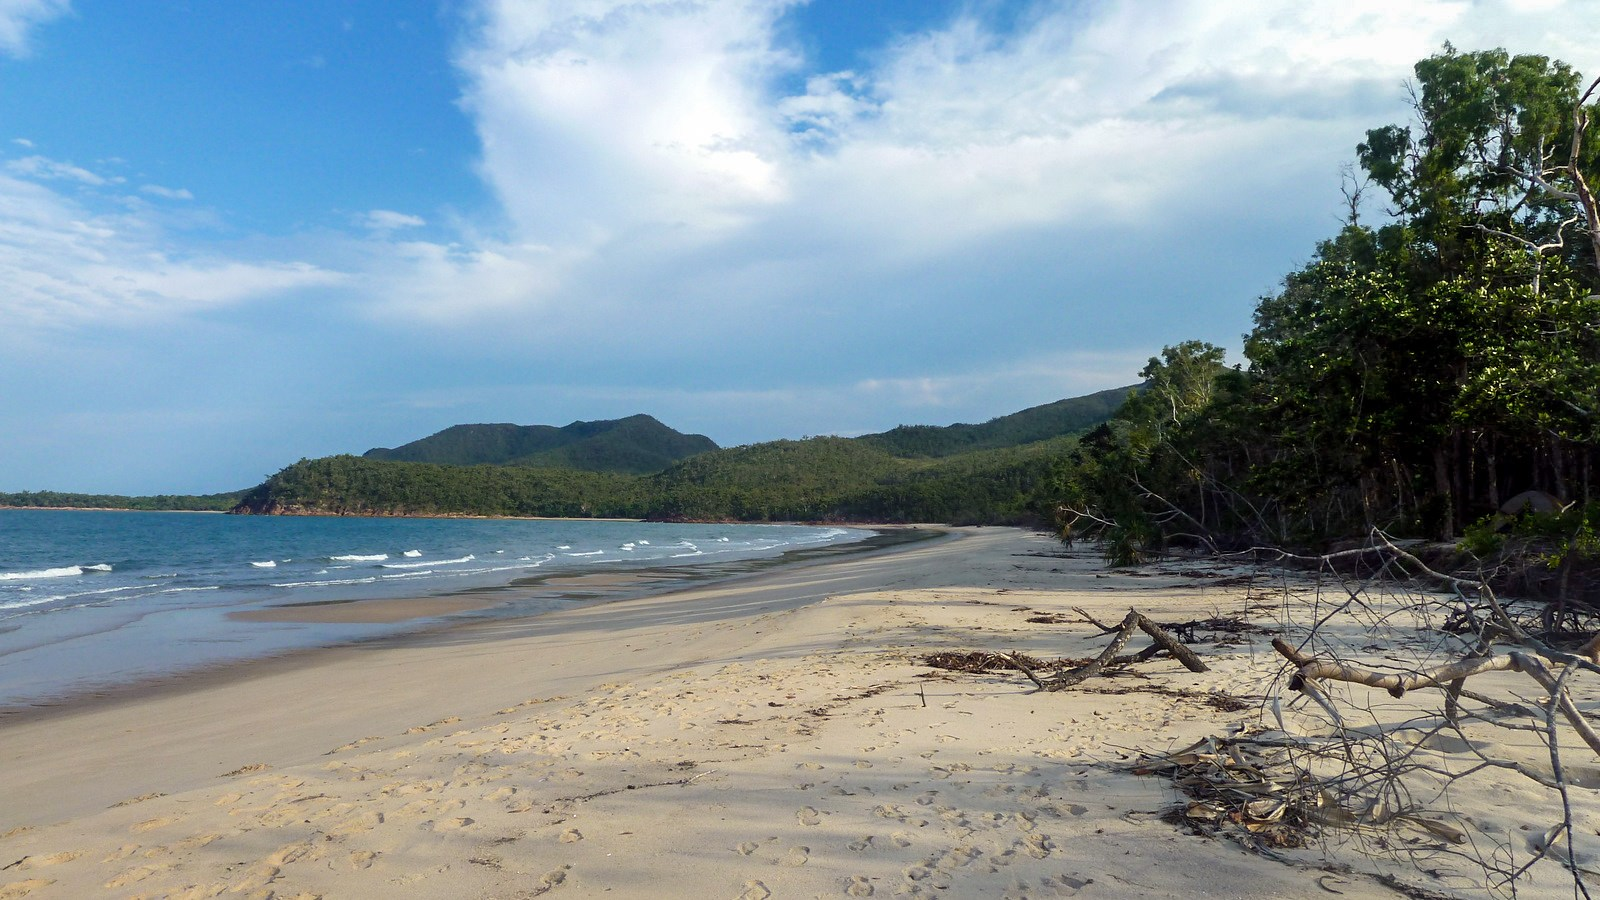 a photo of the beach campsite on hinchinbrook island.